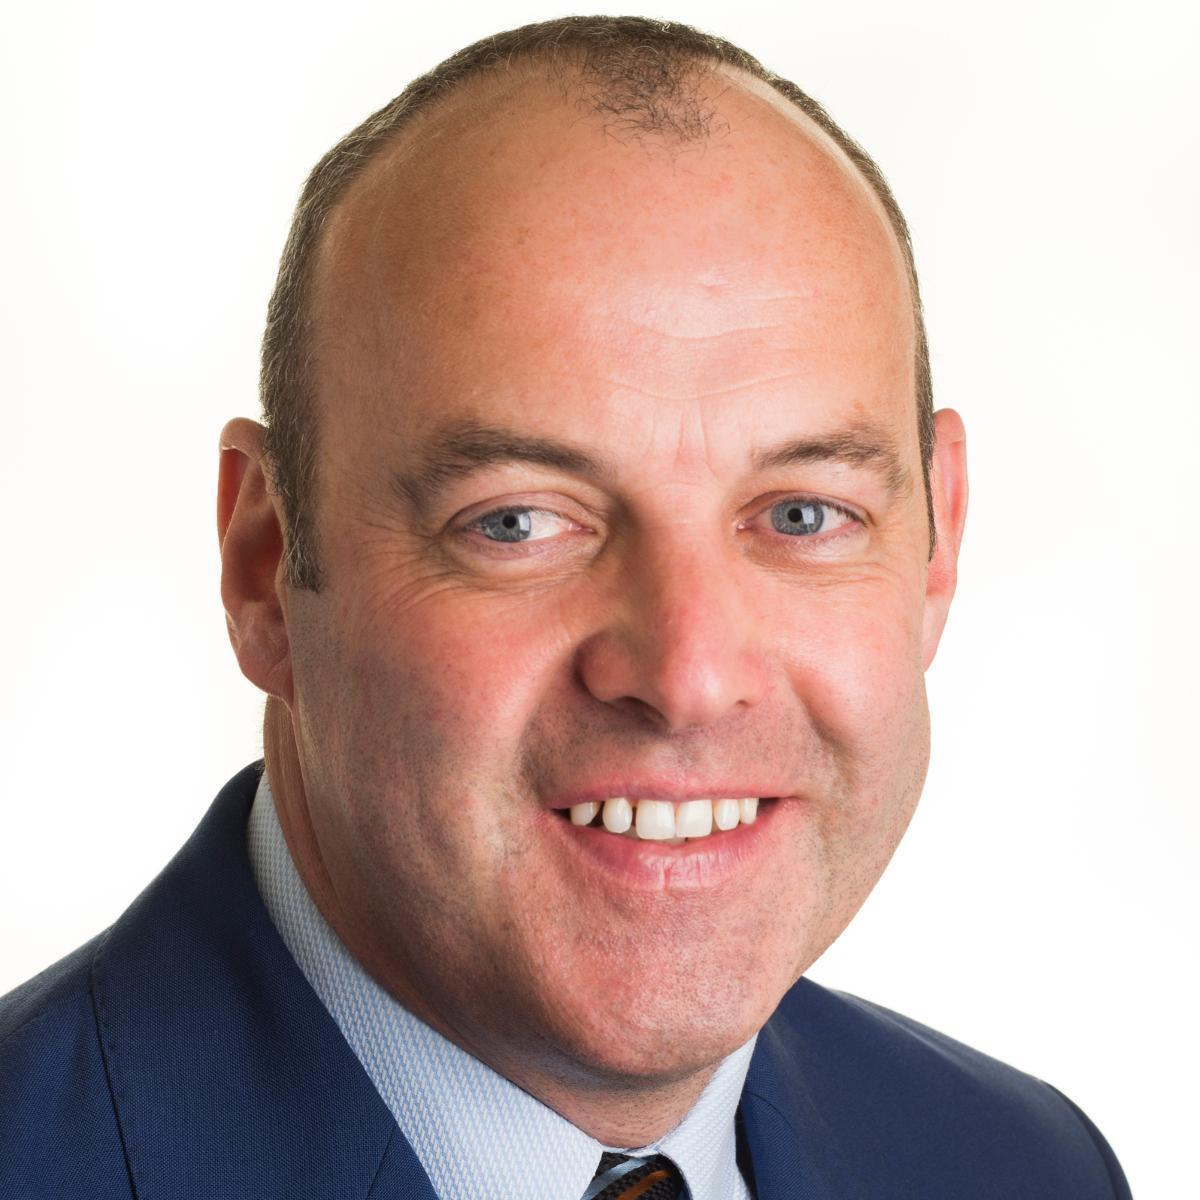 CYPG Group COO Fraser Ingram